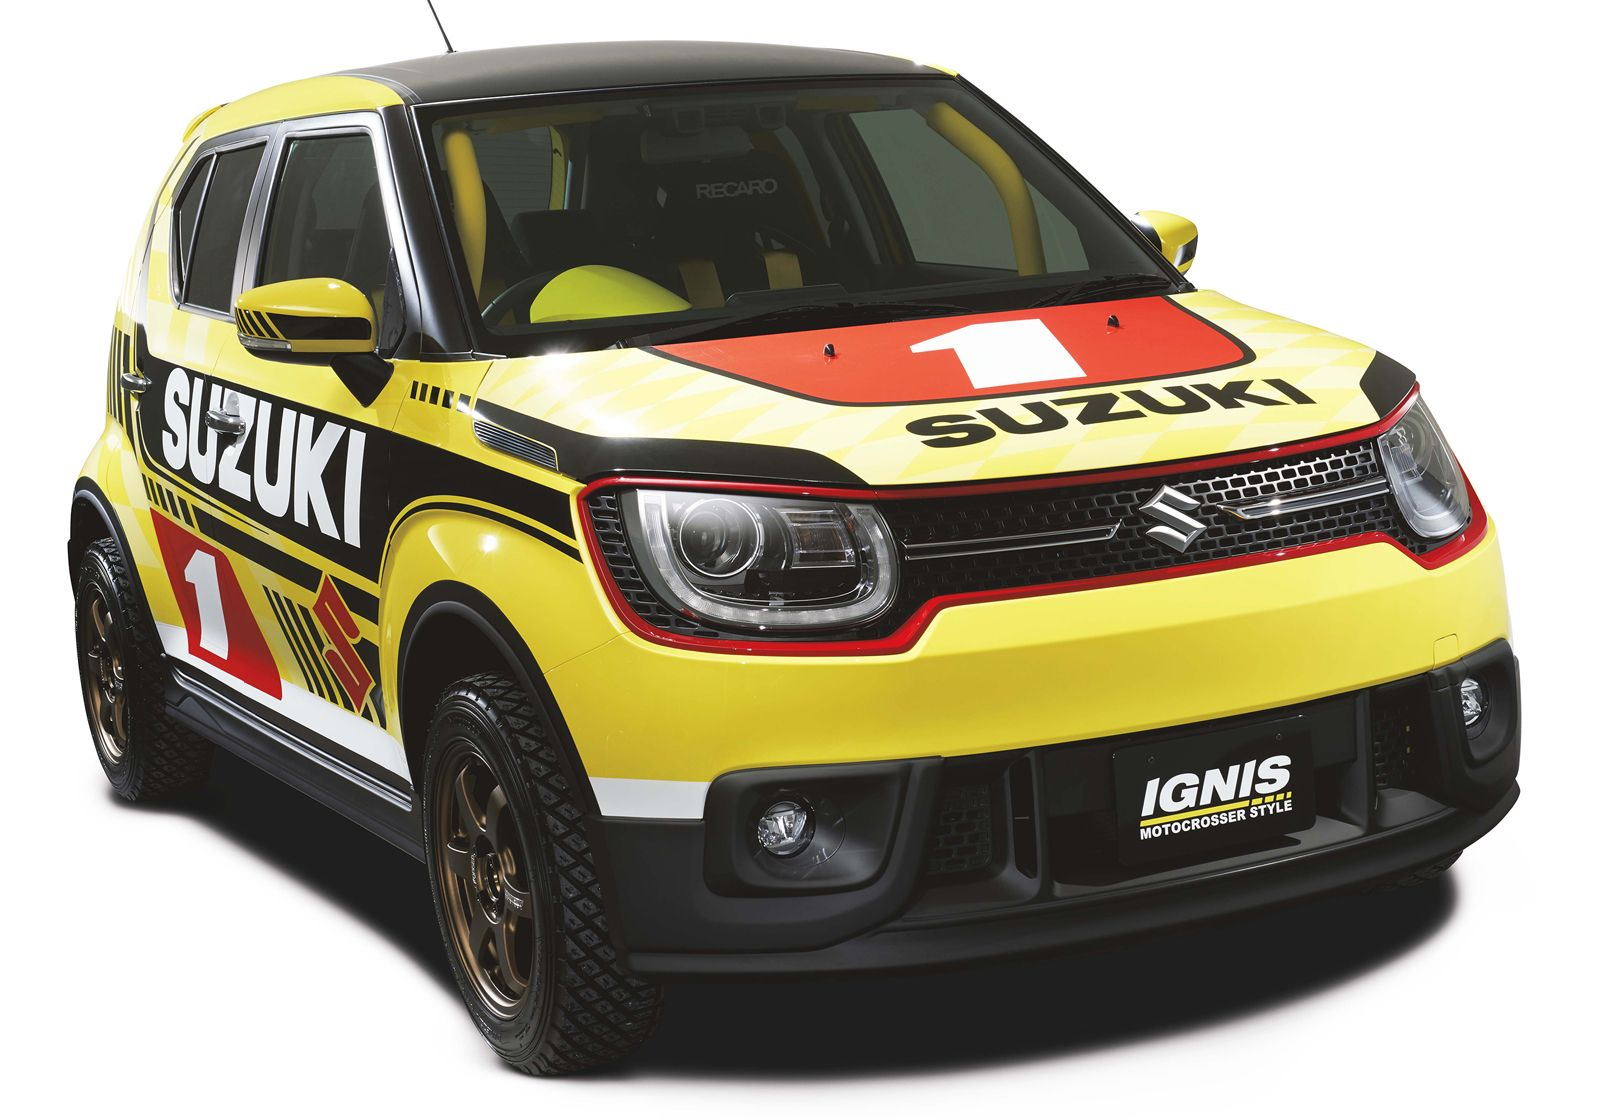 The New Suzuki Swift Looks Like It Would Make A Cool Racer New